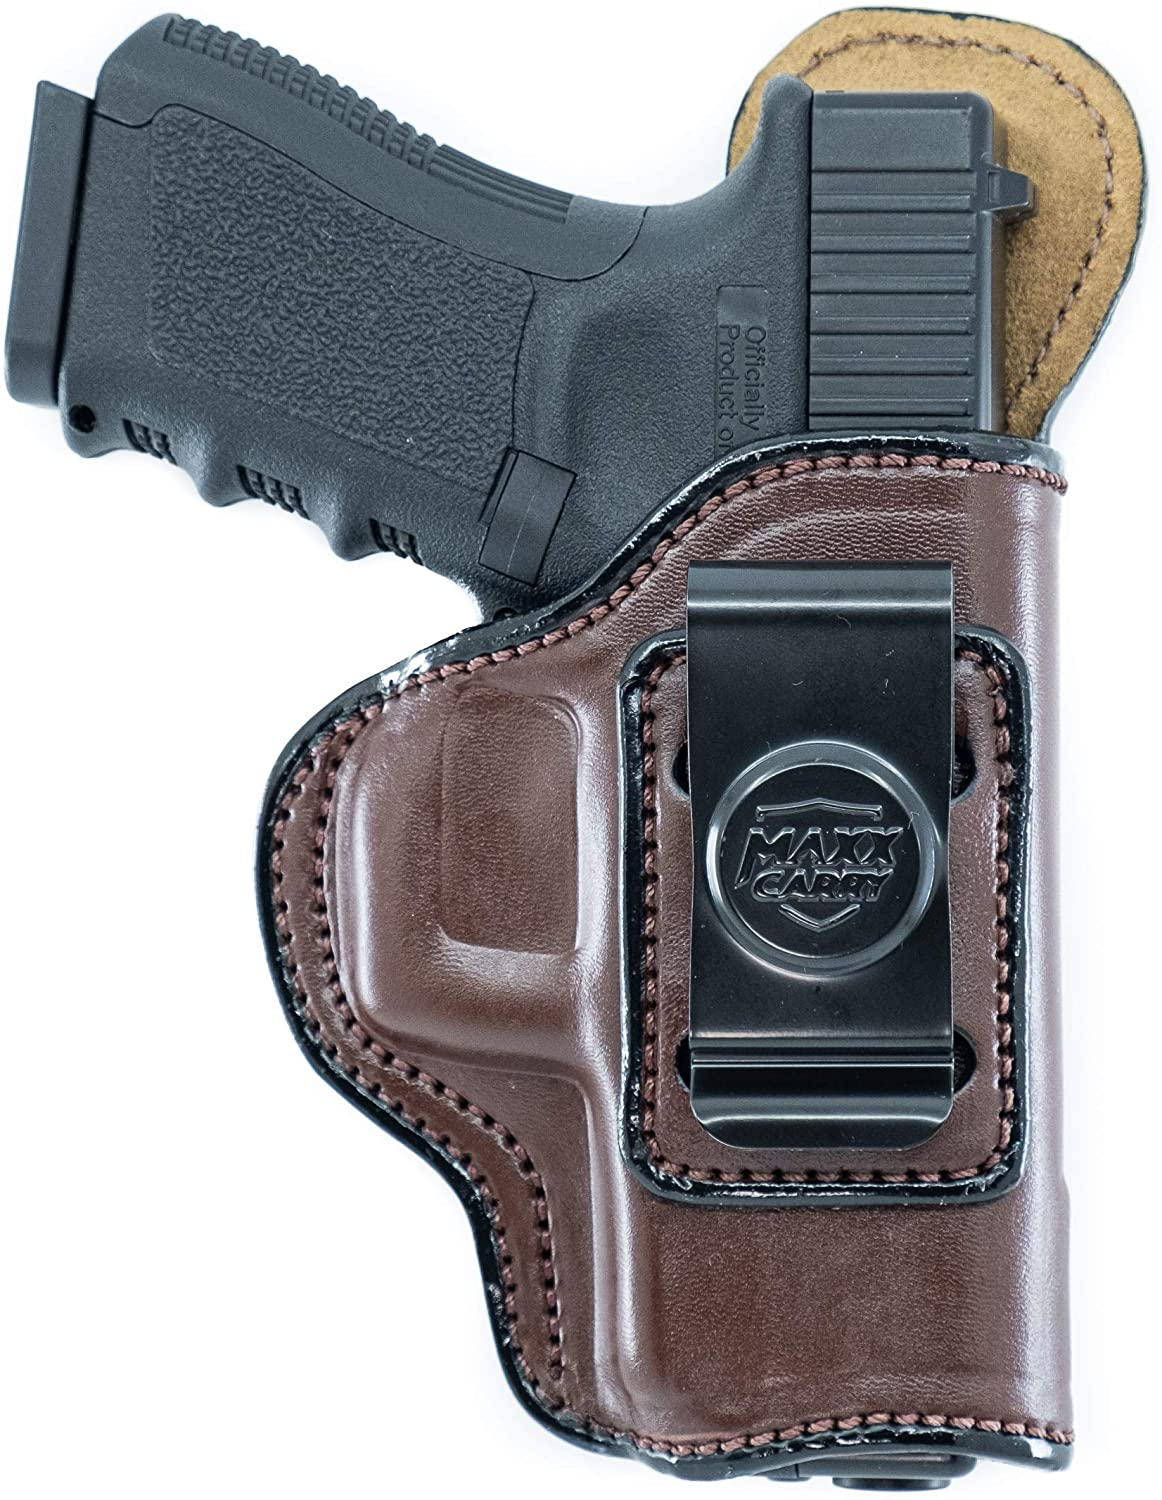 Maxx Carry IWB Springfield XDS 9mm Leather Holster 4 inch 9 mm, XDE 3.3 inch